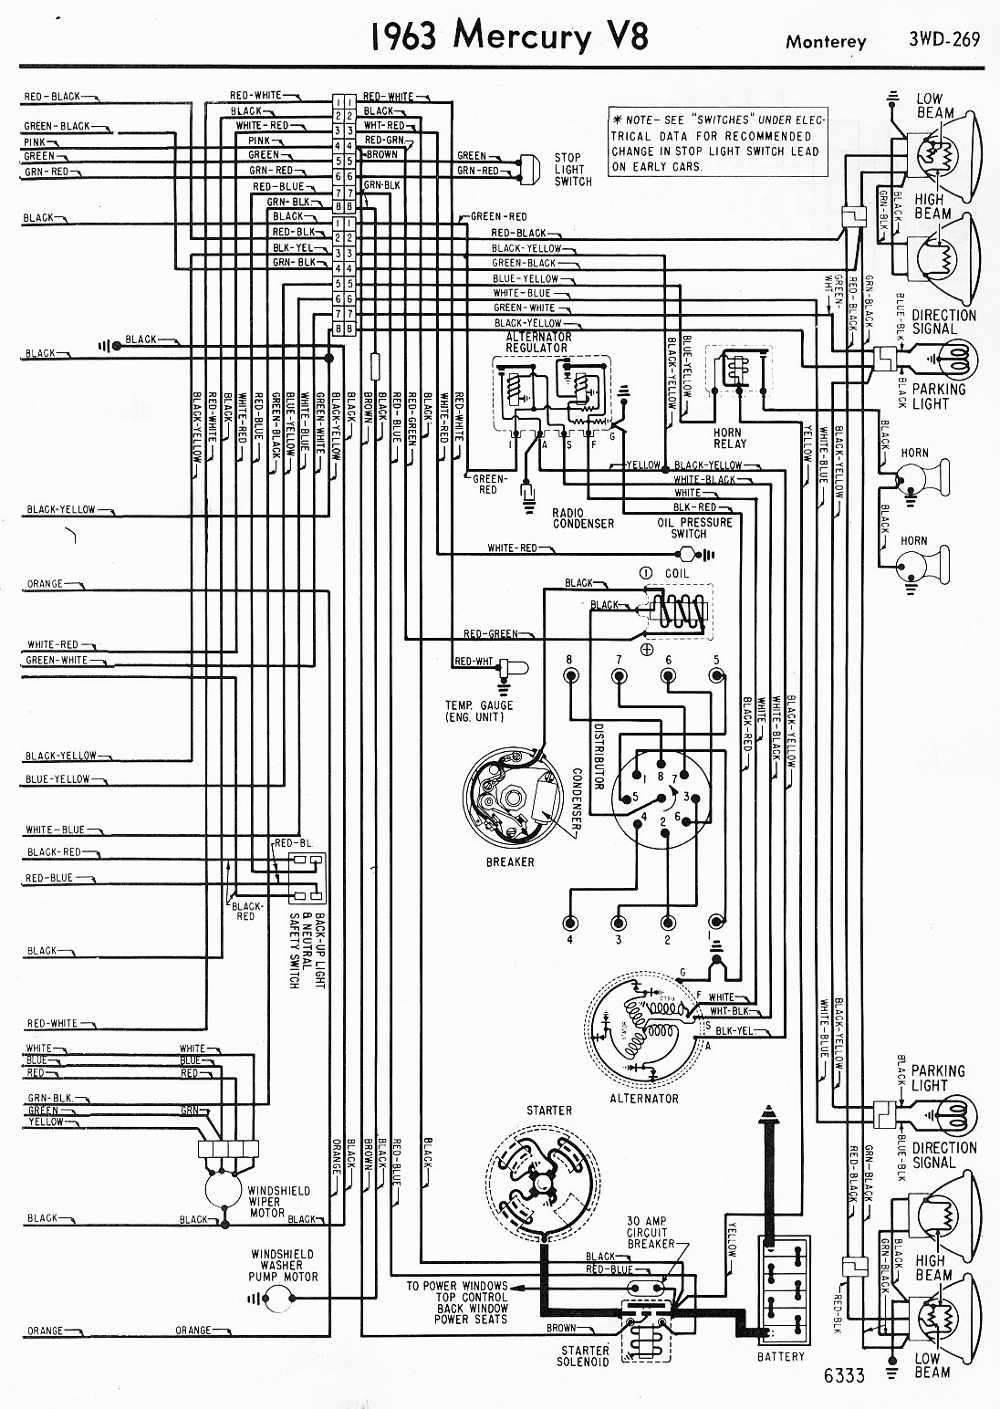 1978 Mercury 500 Wiring Schematic Diagram Library Mercruiser V8 Monterey 1963 Right Side Part